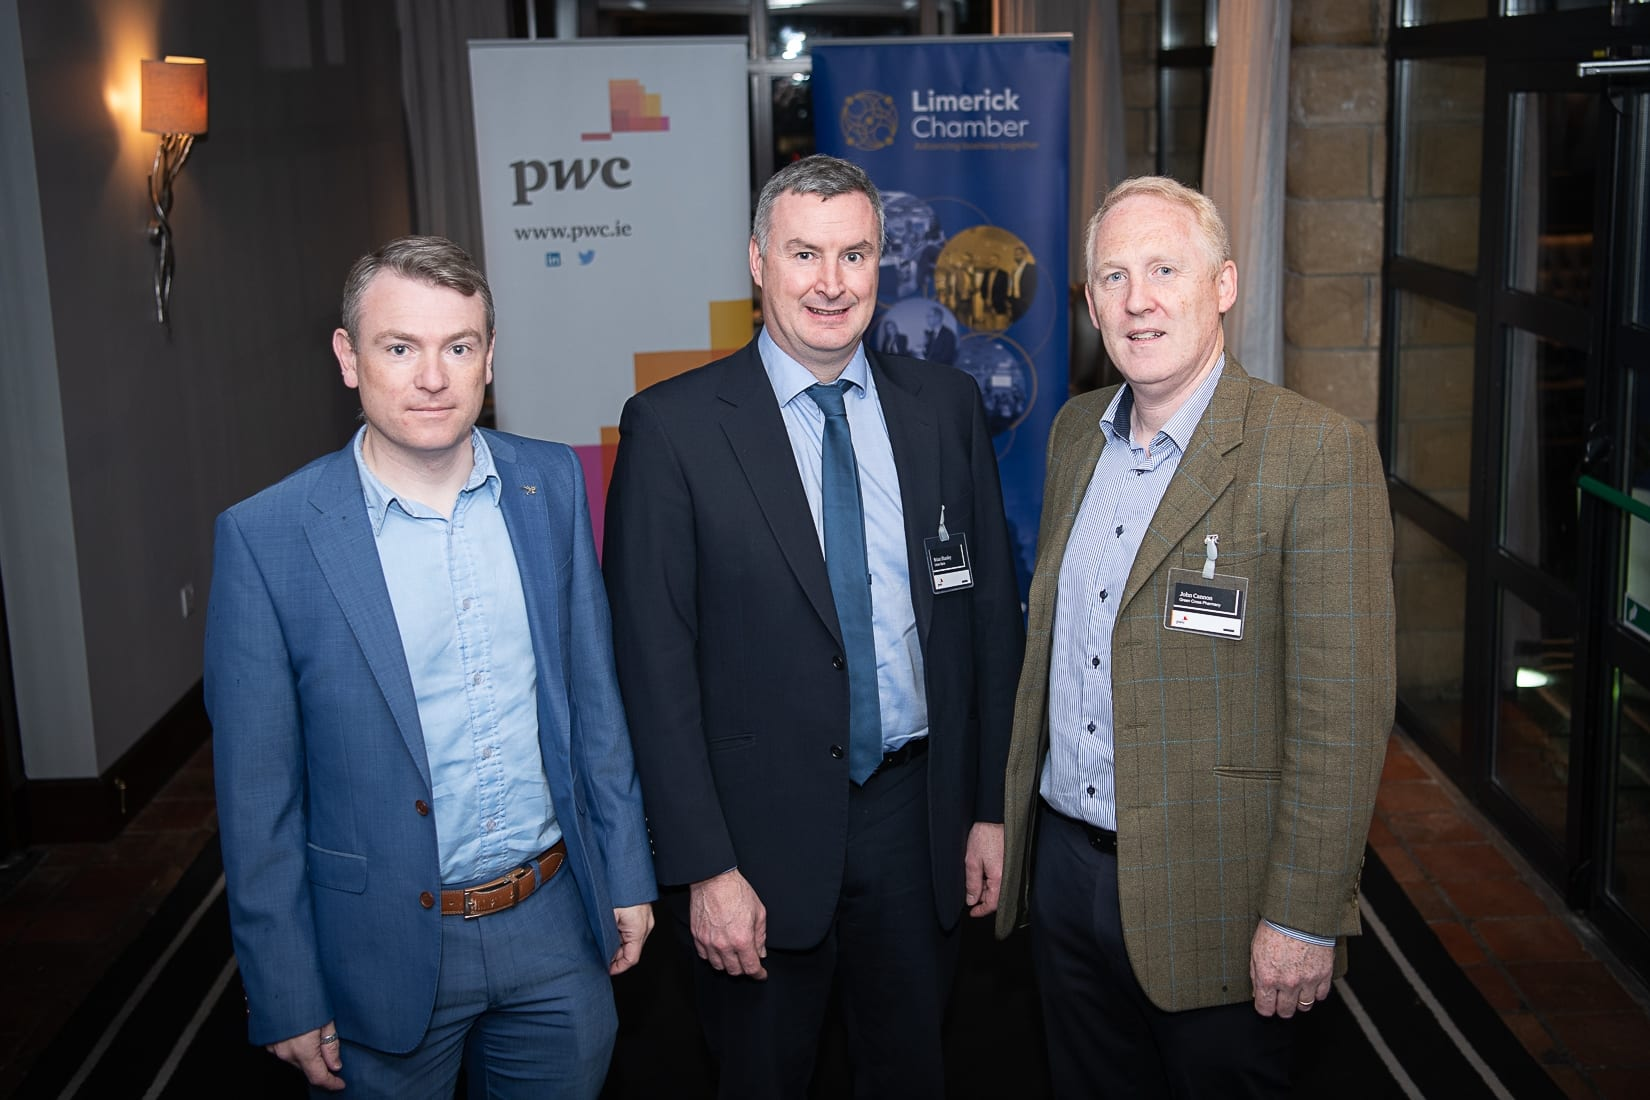 PWC Budget Breakfast in association with the Limerick Chamber which took place in the Castletroy Park Hotel on 9th October 2019, from left to right:  Philip Stack - ARUP, Brian Shanley - Ulster Bank, John Cannon - Martinstown Stud.  Photo by Morning Star Photography